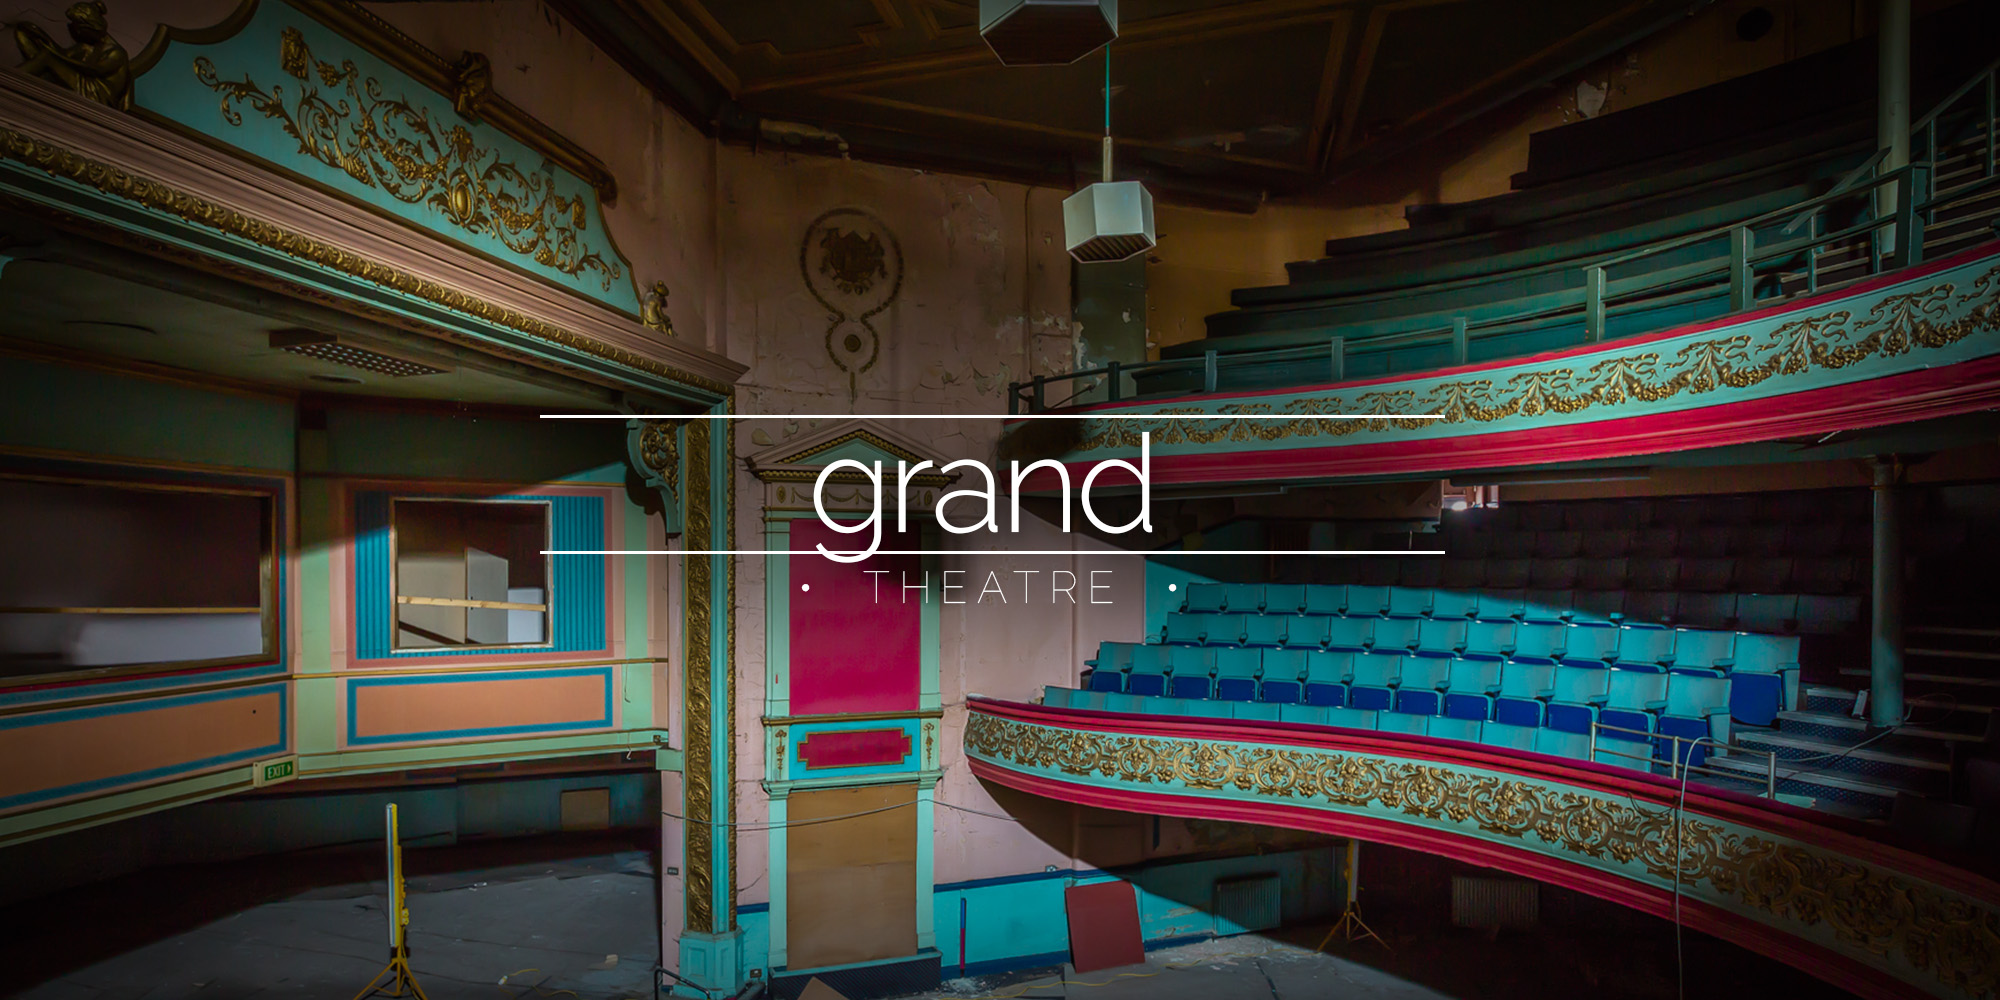 Grand Theatre, Doncaster, Yorkshire, UK